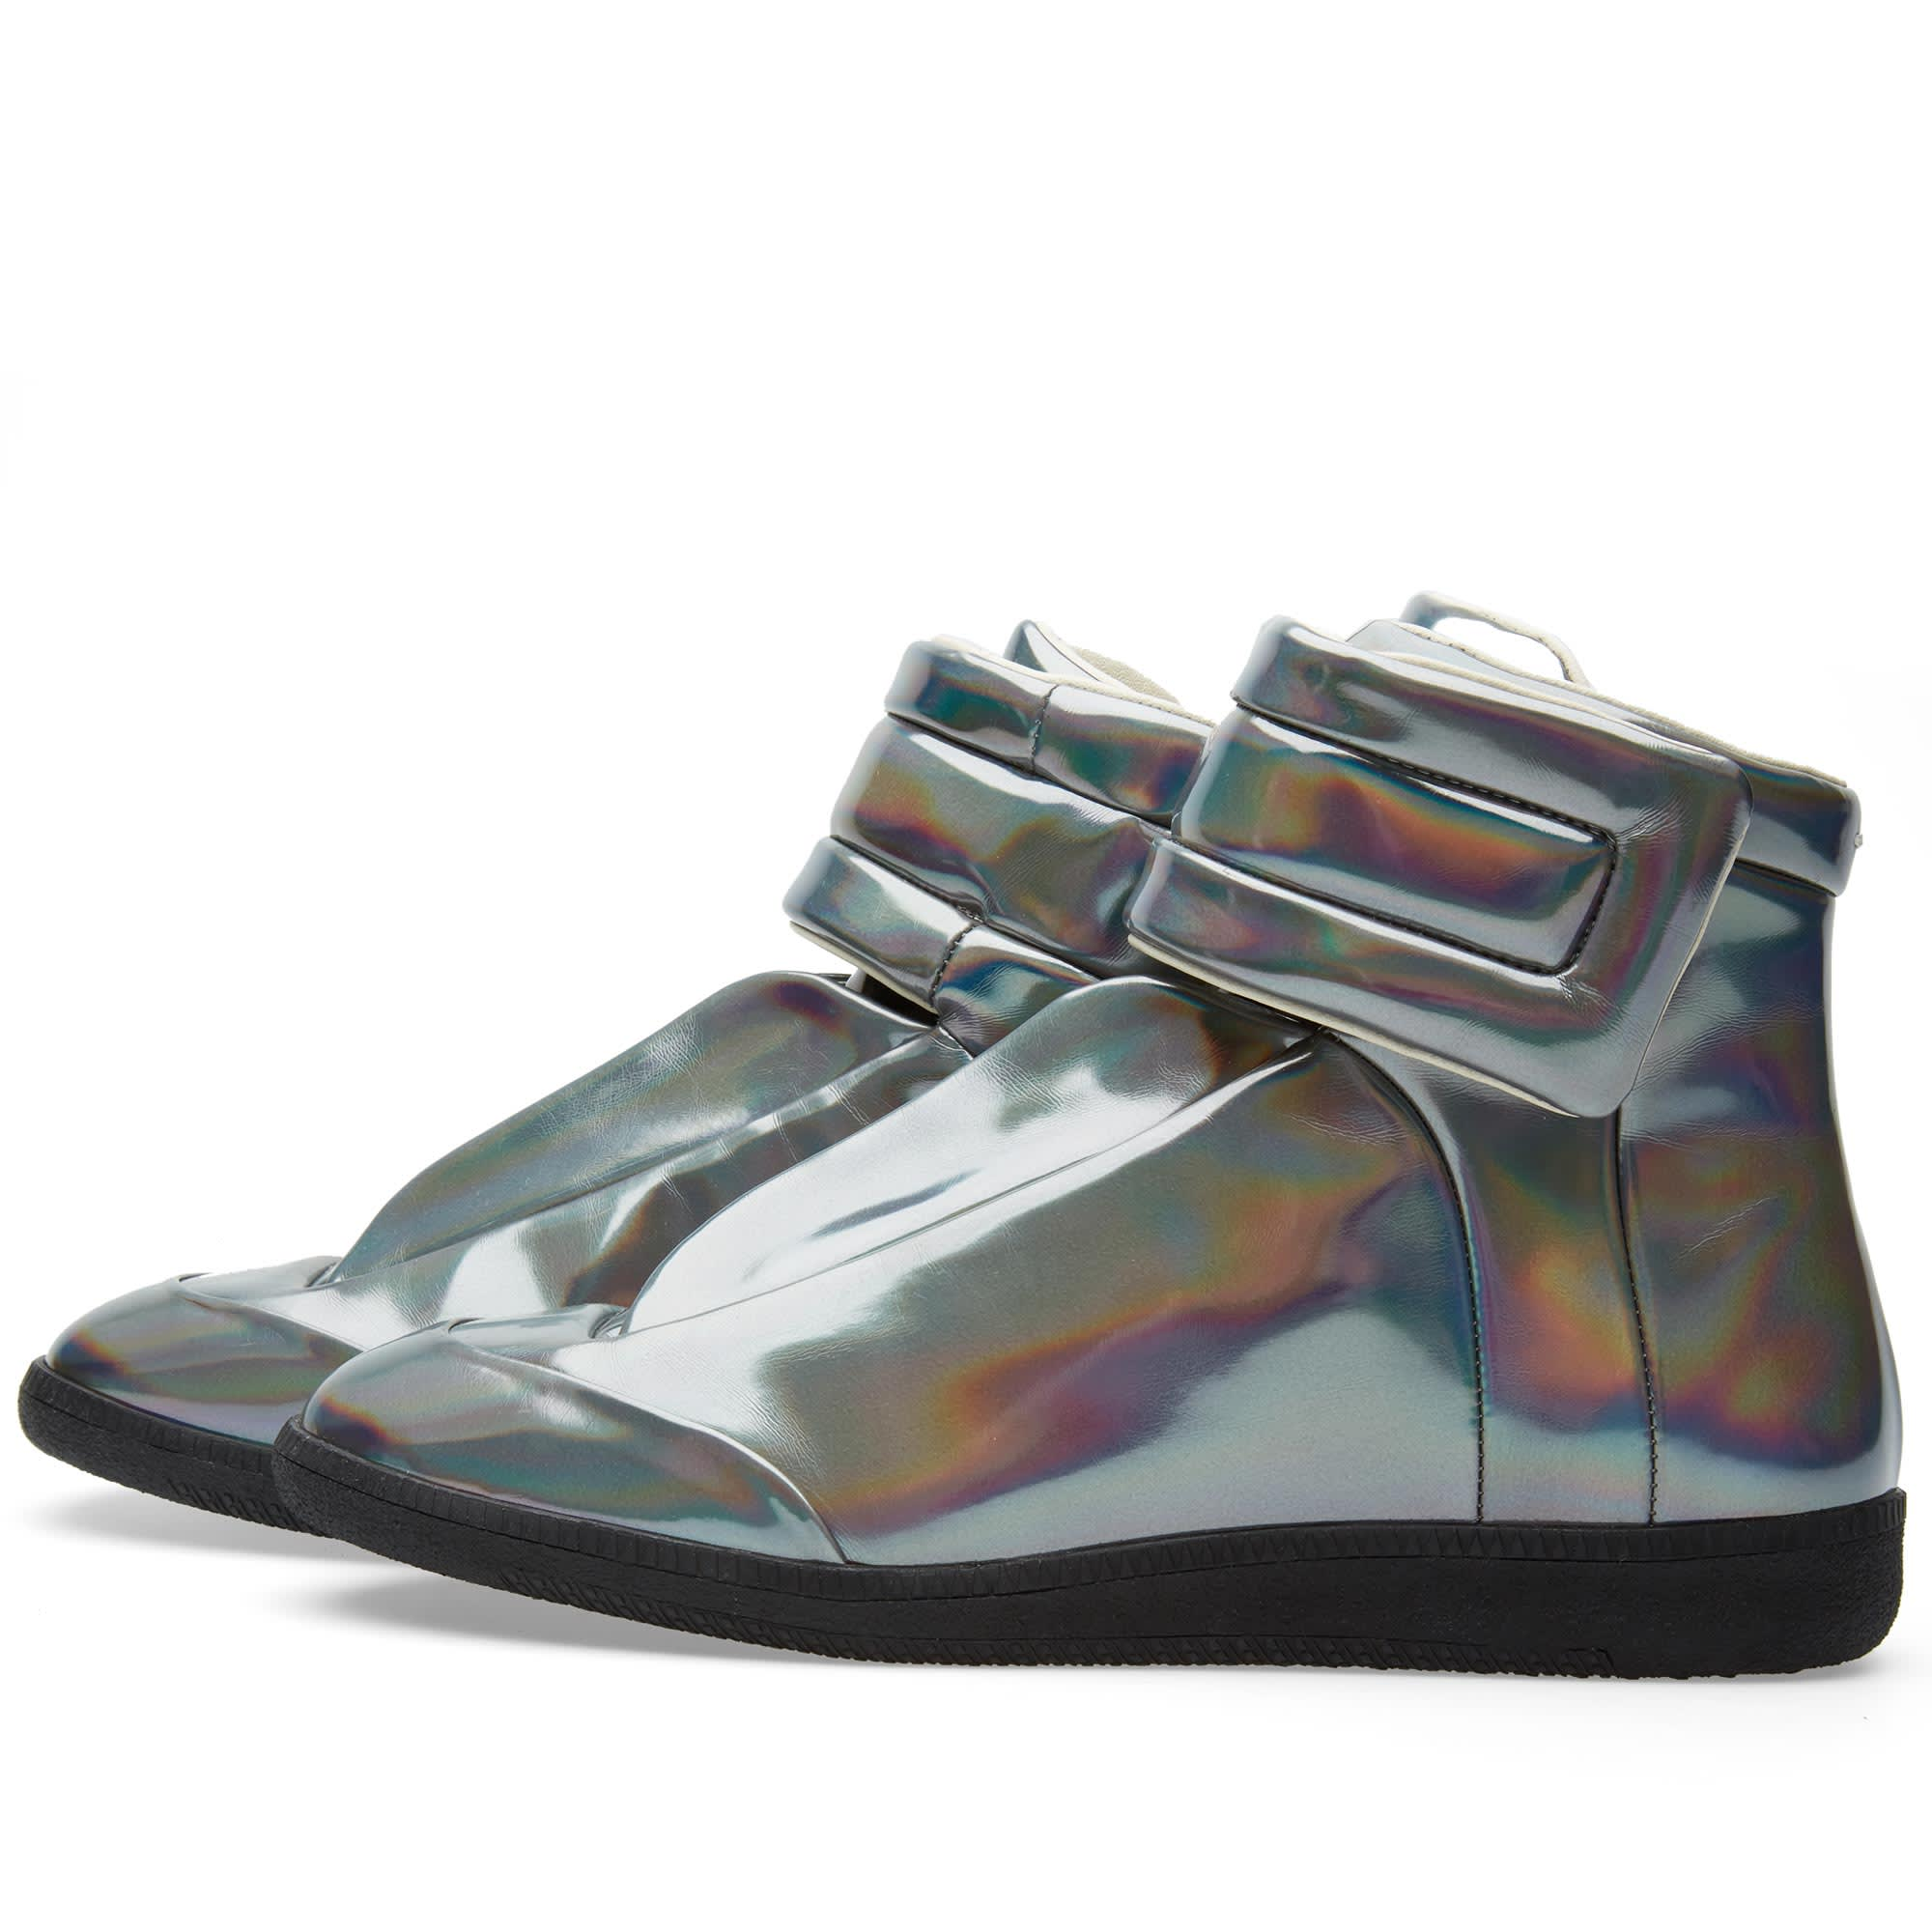 072b7917eff8 Maison Margiela 22 Future High Hologram Sneaker Gunmetal